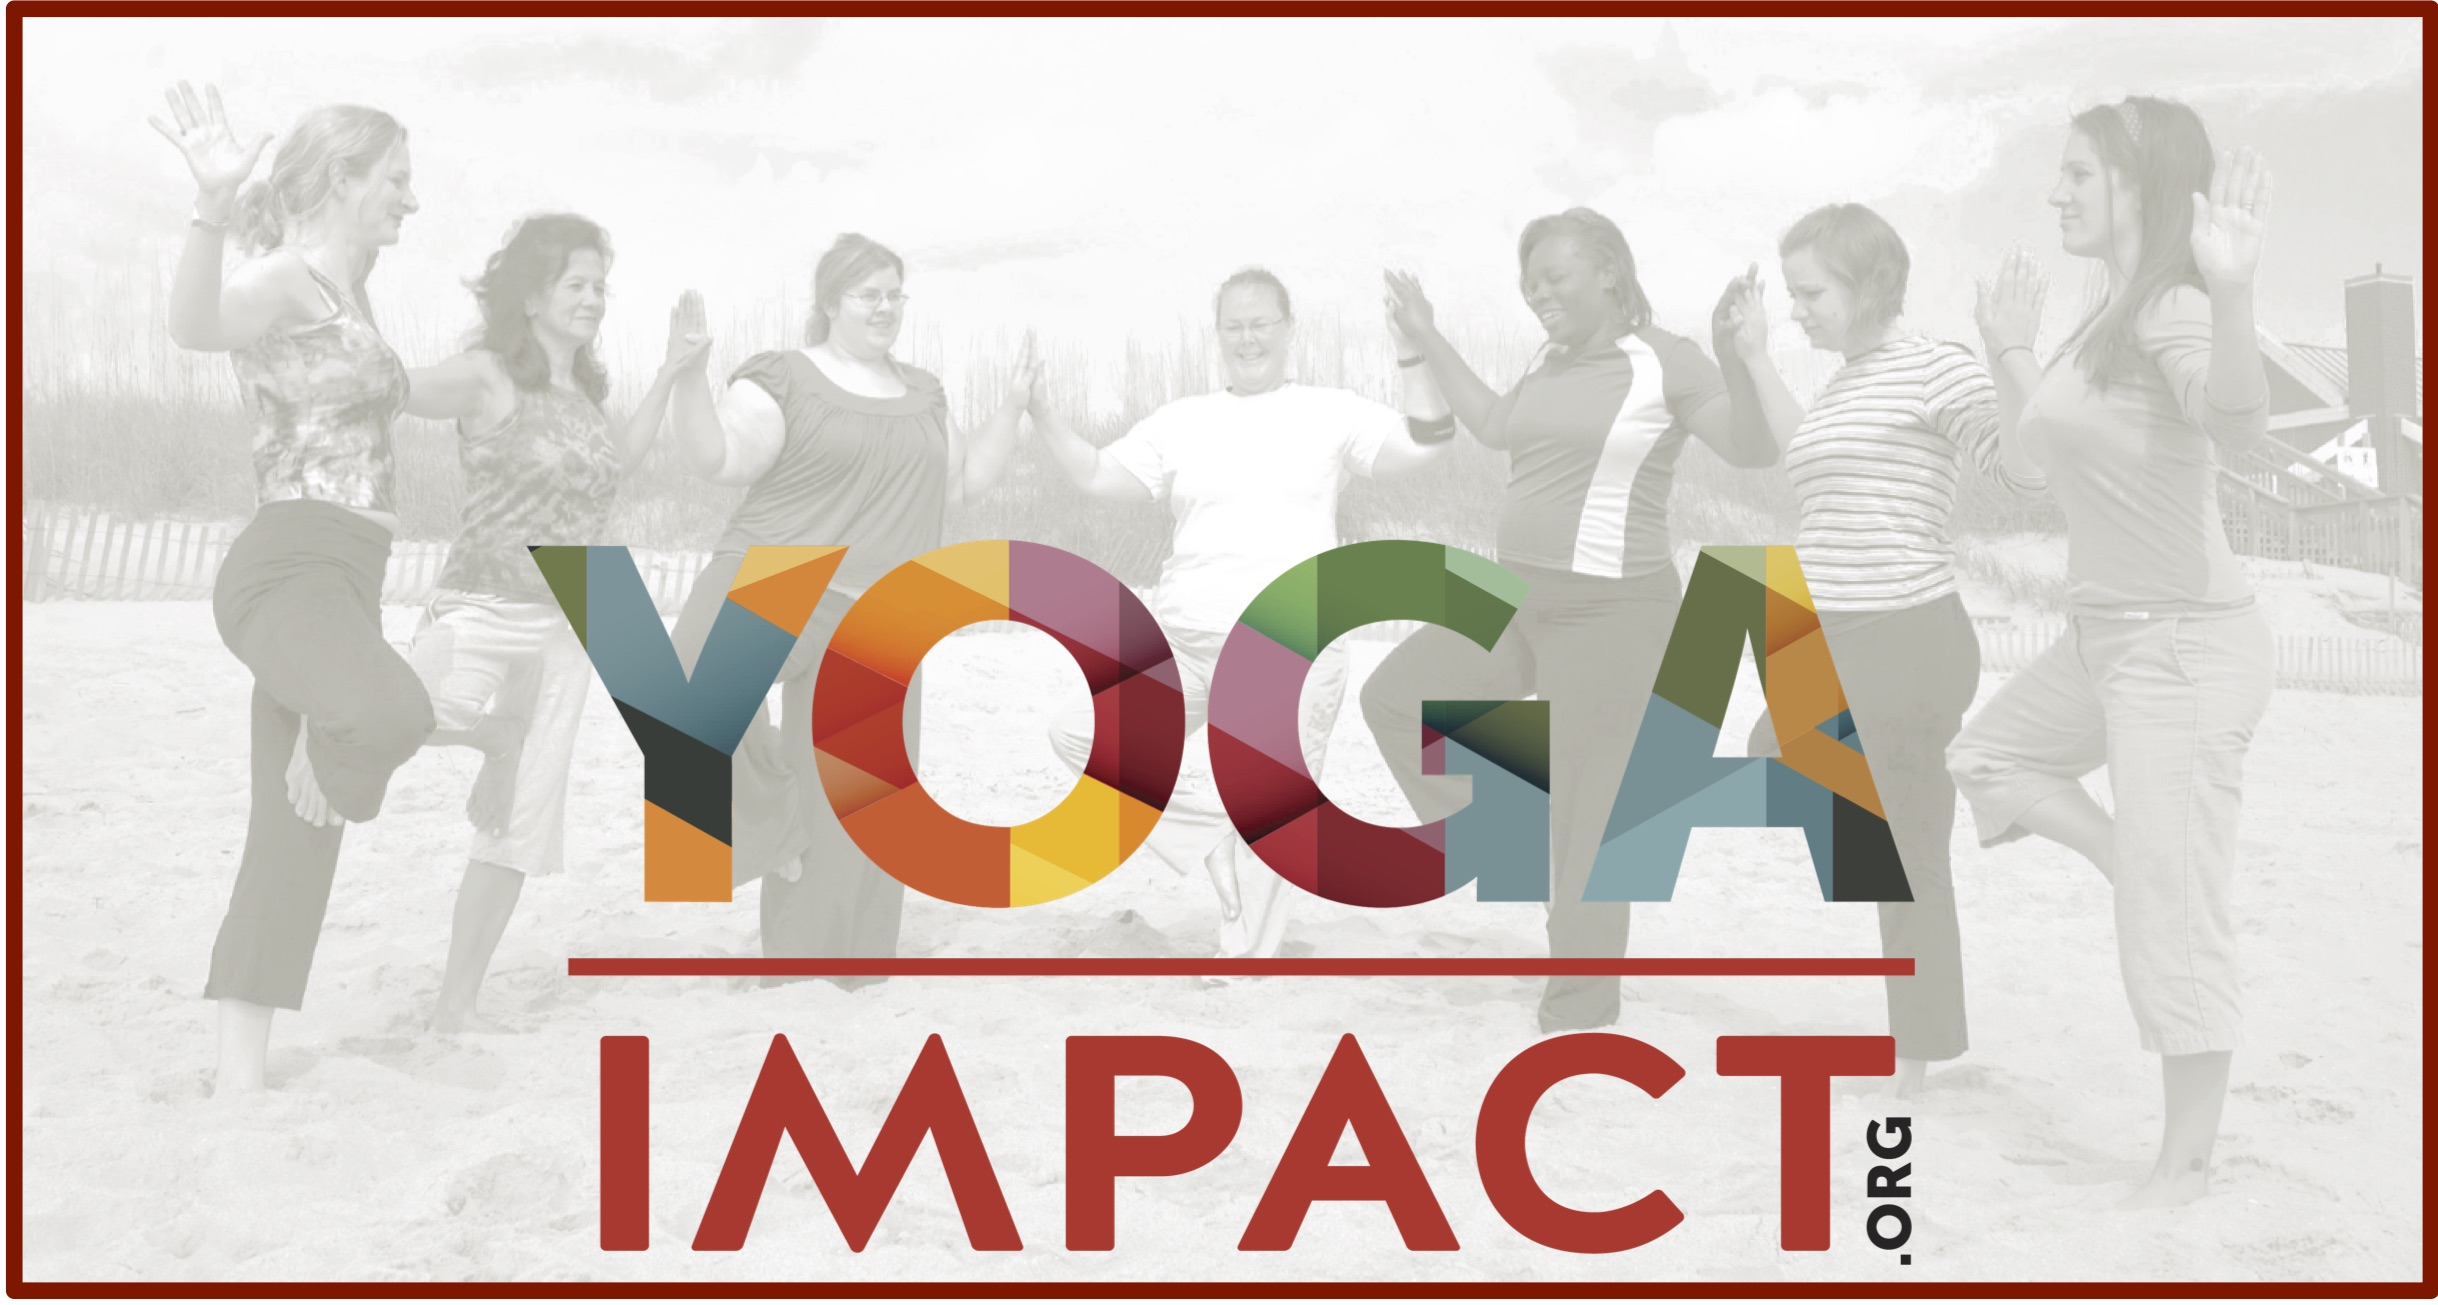 YOGA IMPACT strives to eliminate the gap in how wellness is distributed - by training yoga teachers and supporting wellness projects in communities that have been marginalized.